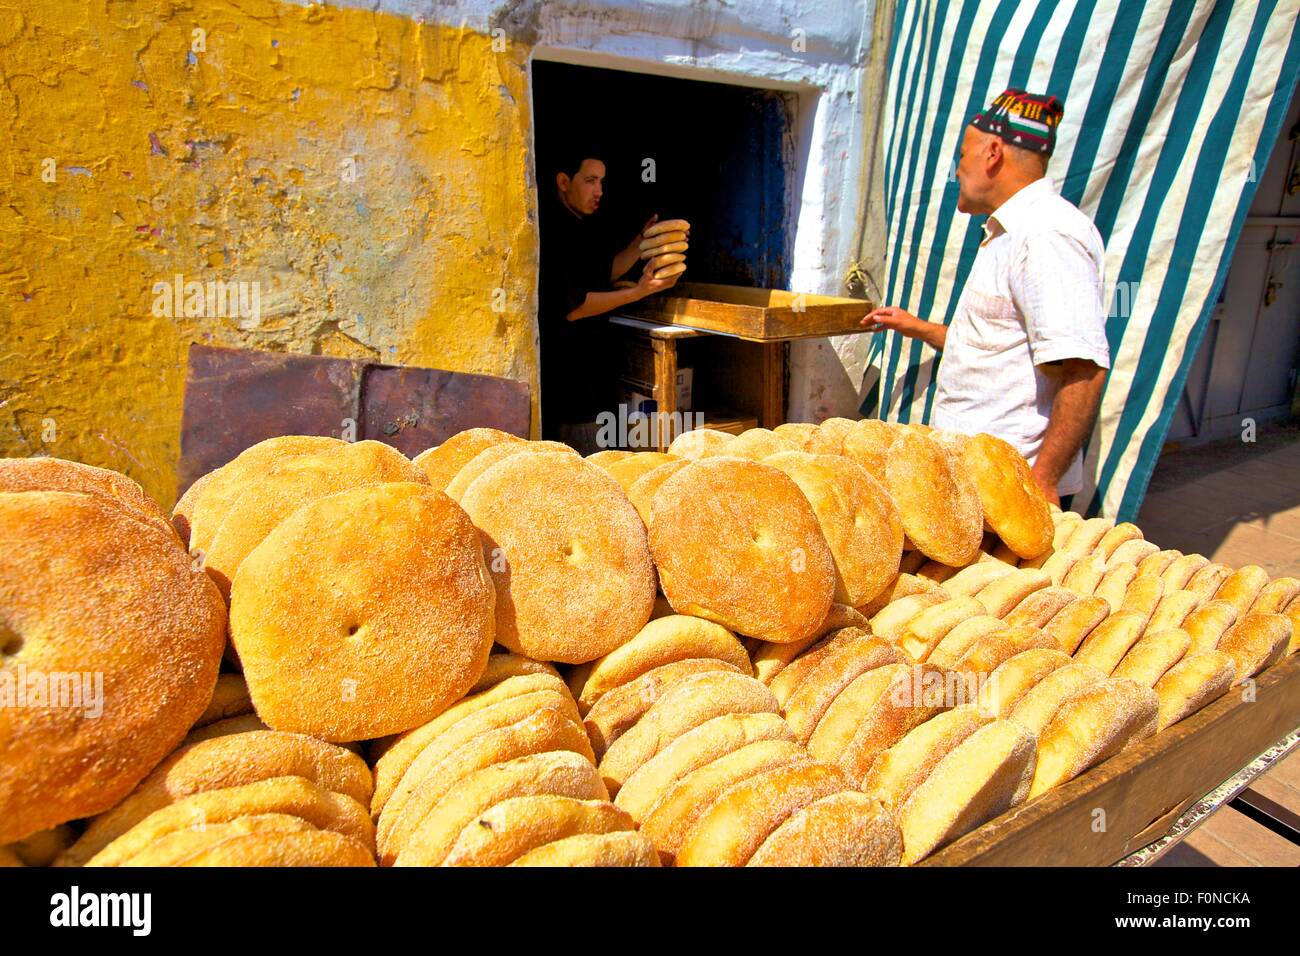 Baker with Freshly Baked Bread, Rabat, Morocco, North Africa - Stock Image